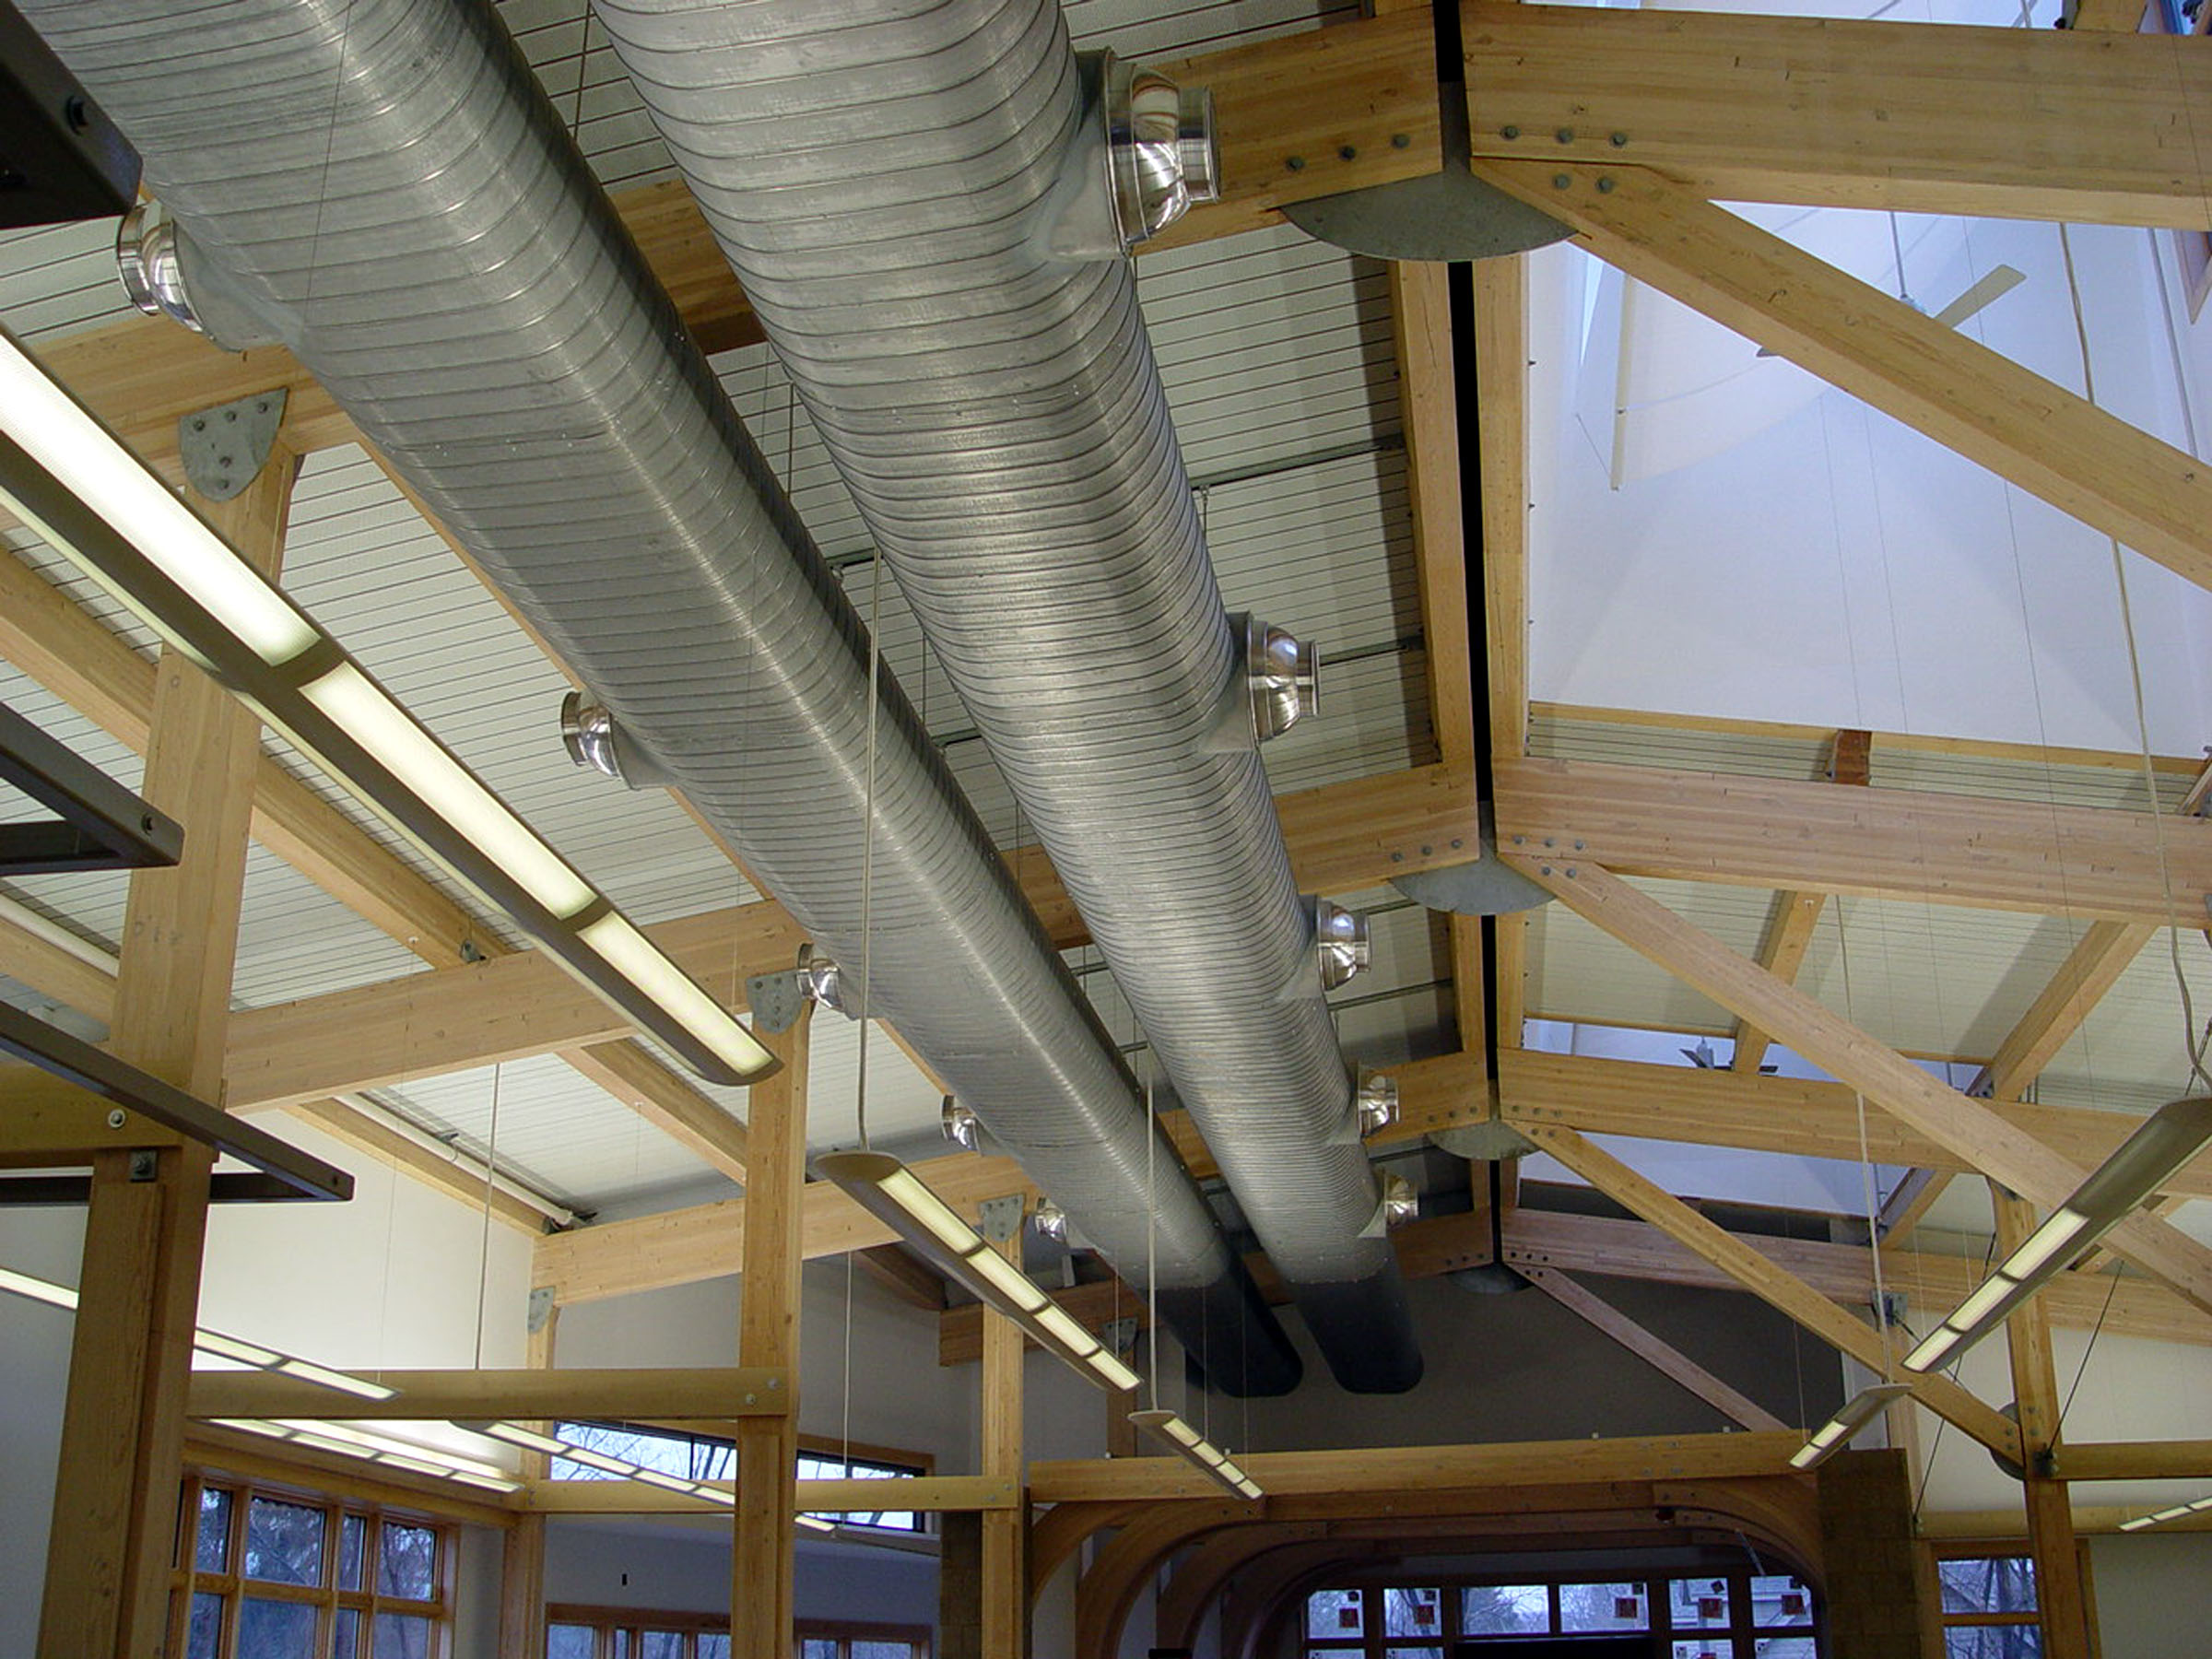 Malletts Creek Branch, sustainability, construction: Vents and beams, 2003 image